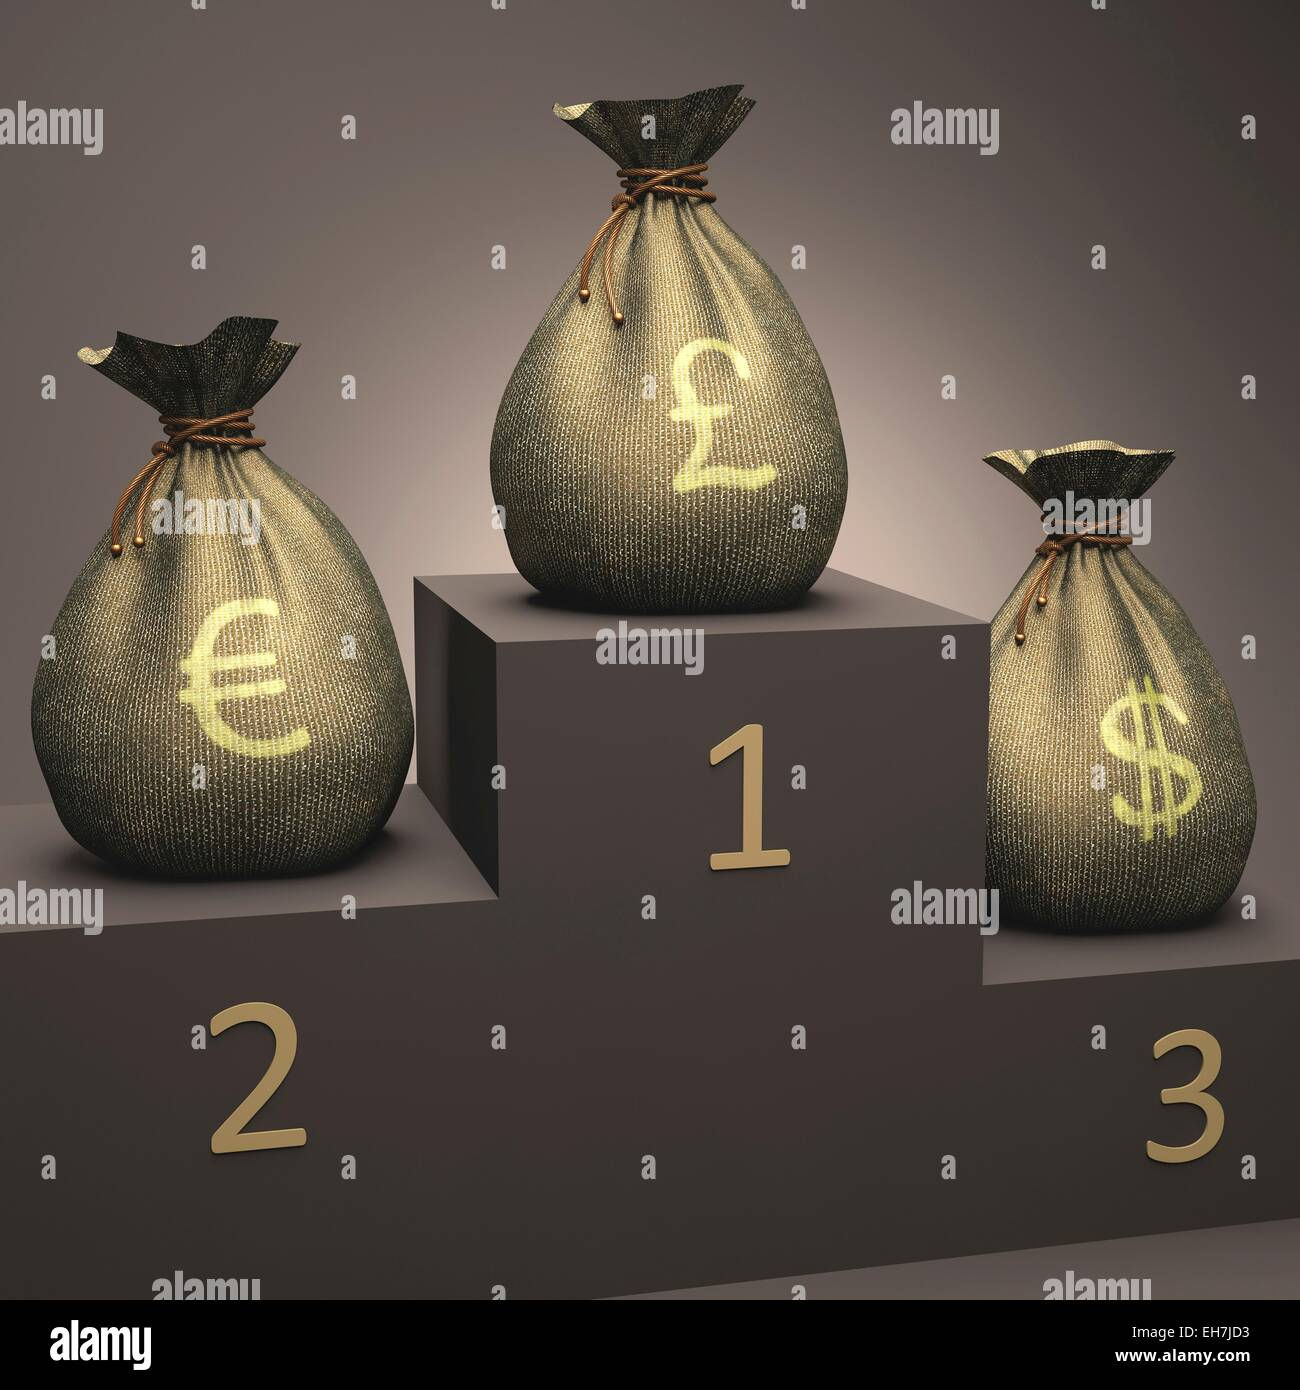 Currencies on a podium, illustration - Stock Image